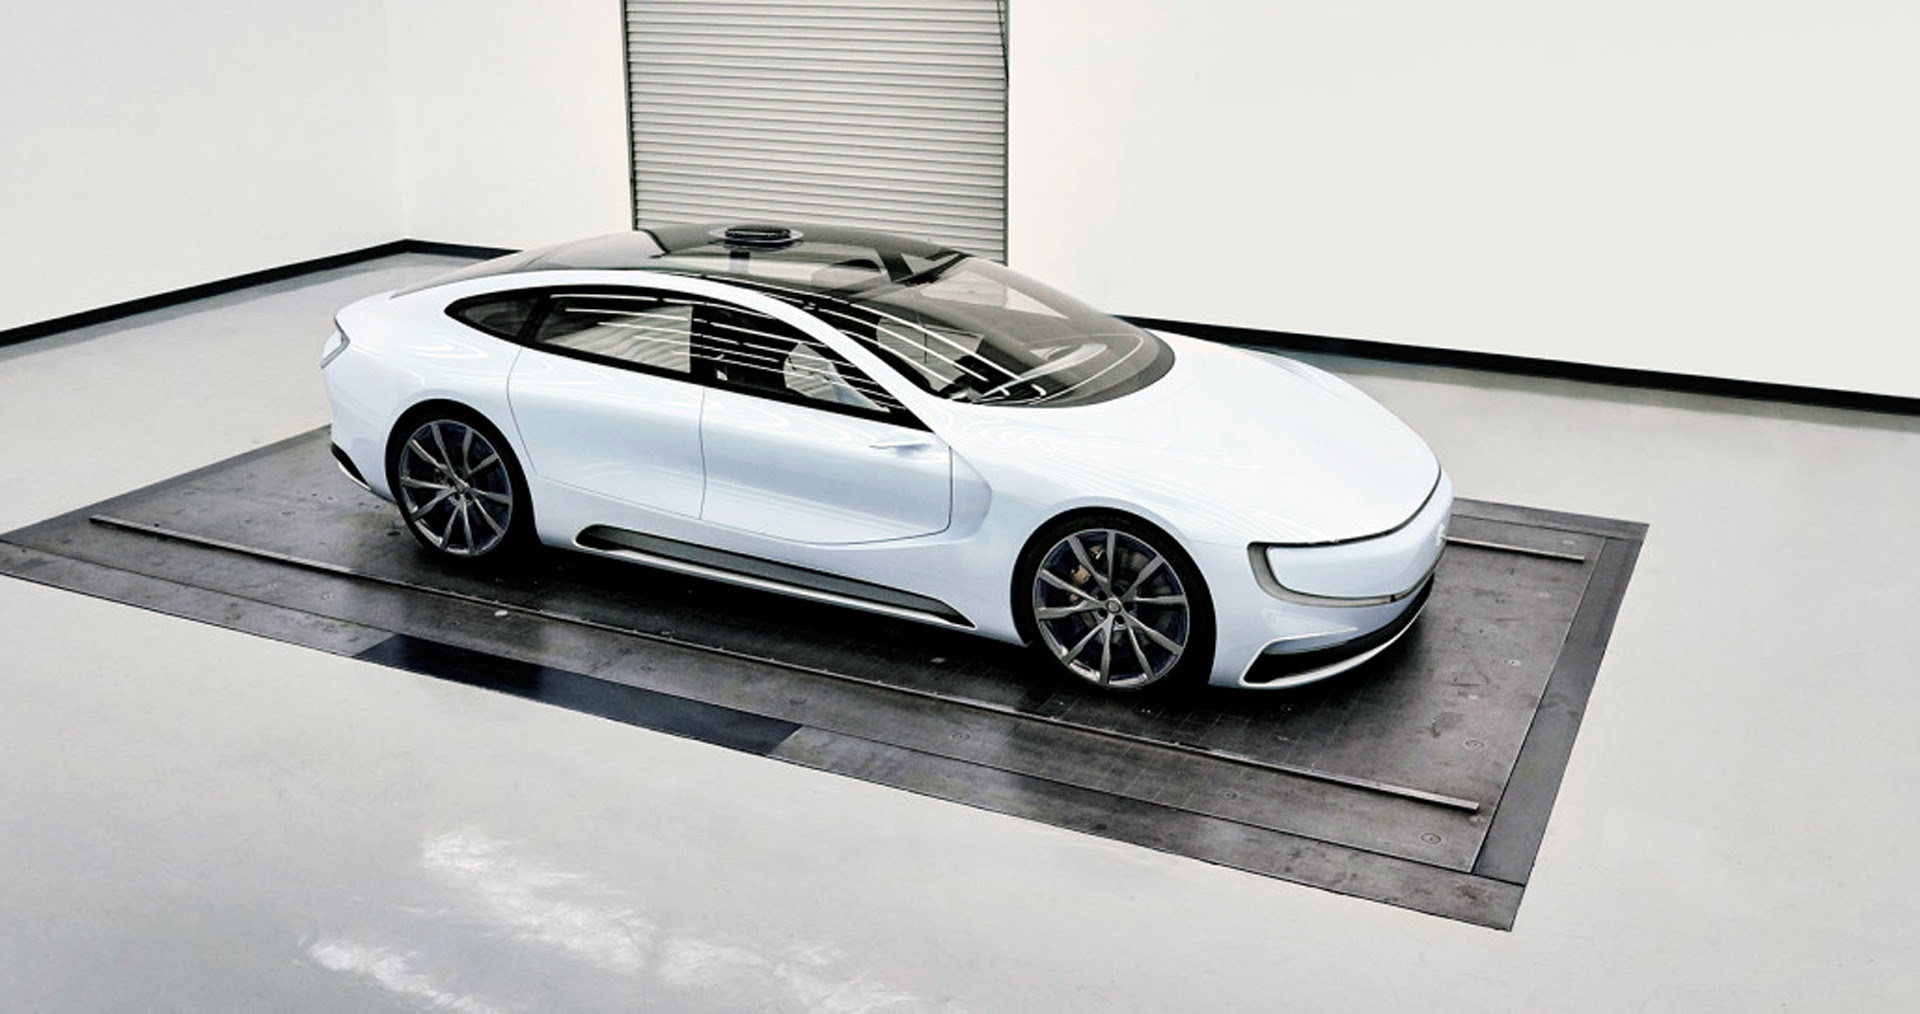 LeSee concept heralds new electric car from China's LeEco